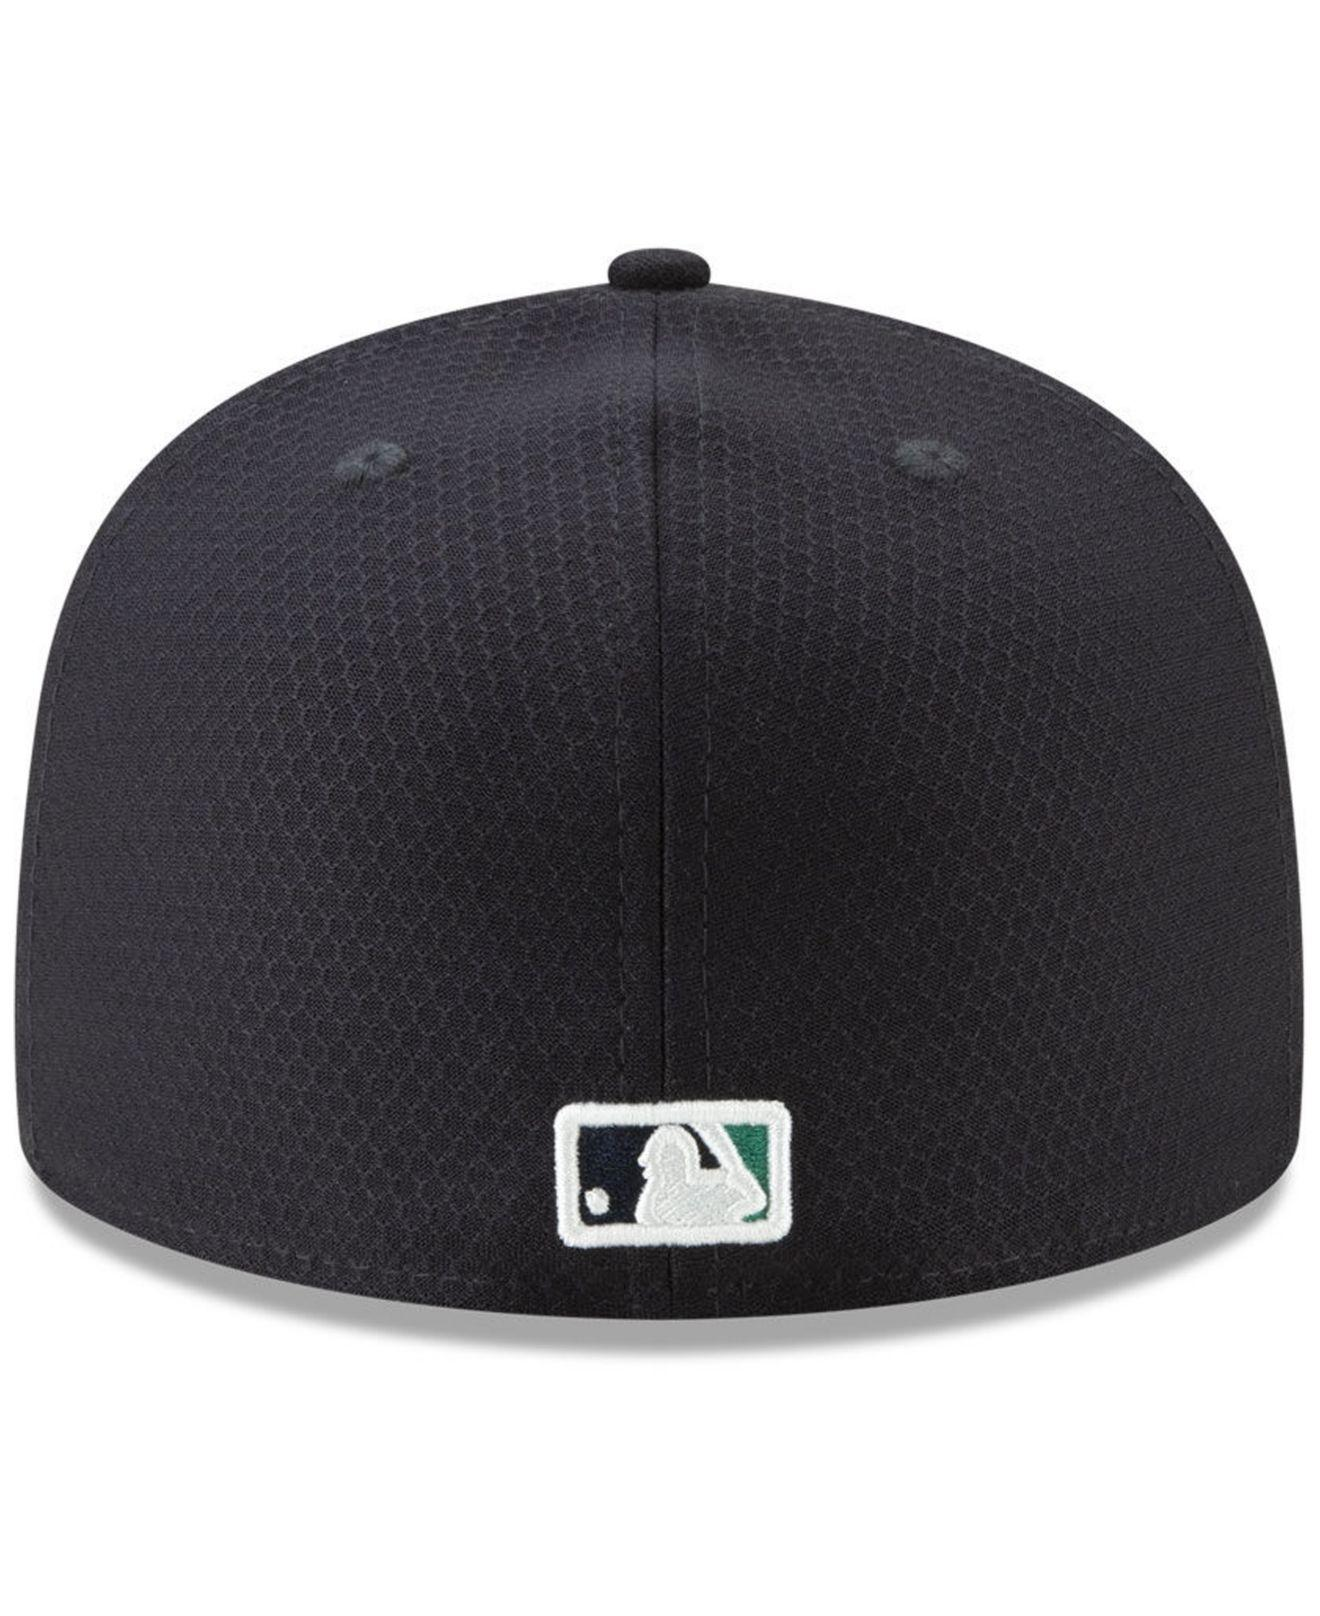 new arrive online here new photos KTZ Synthetic Seattle Mariners Batting Practice 59fifty-fitted Cap ...